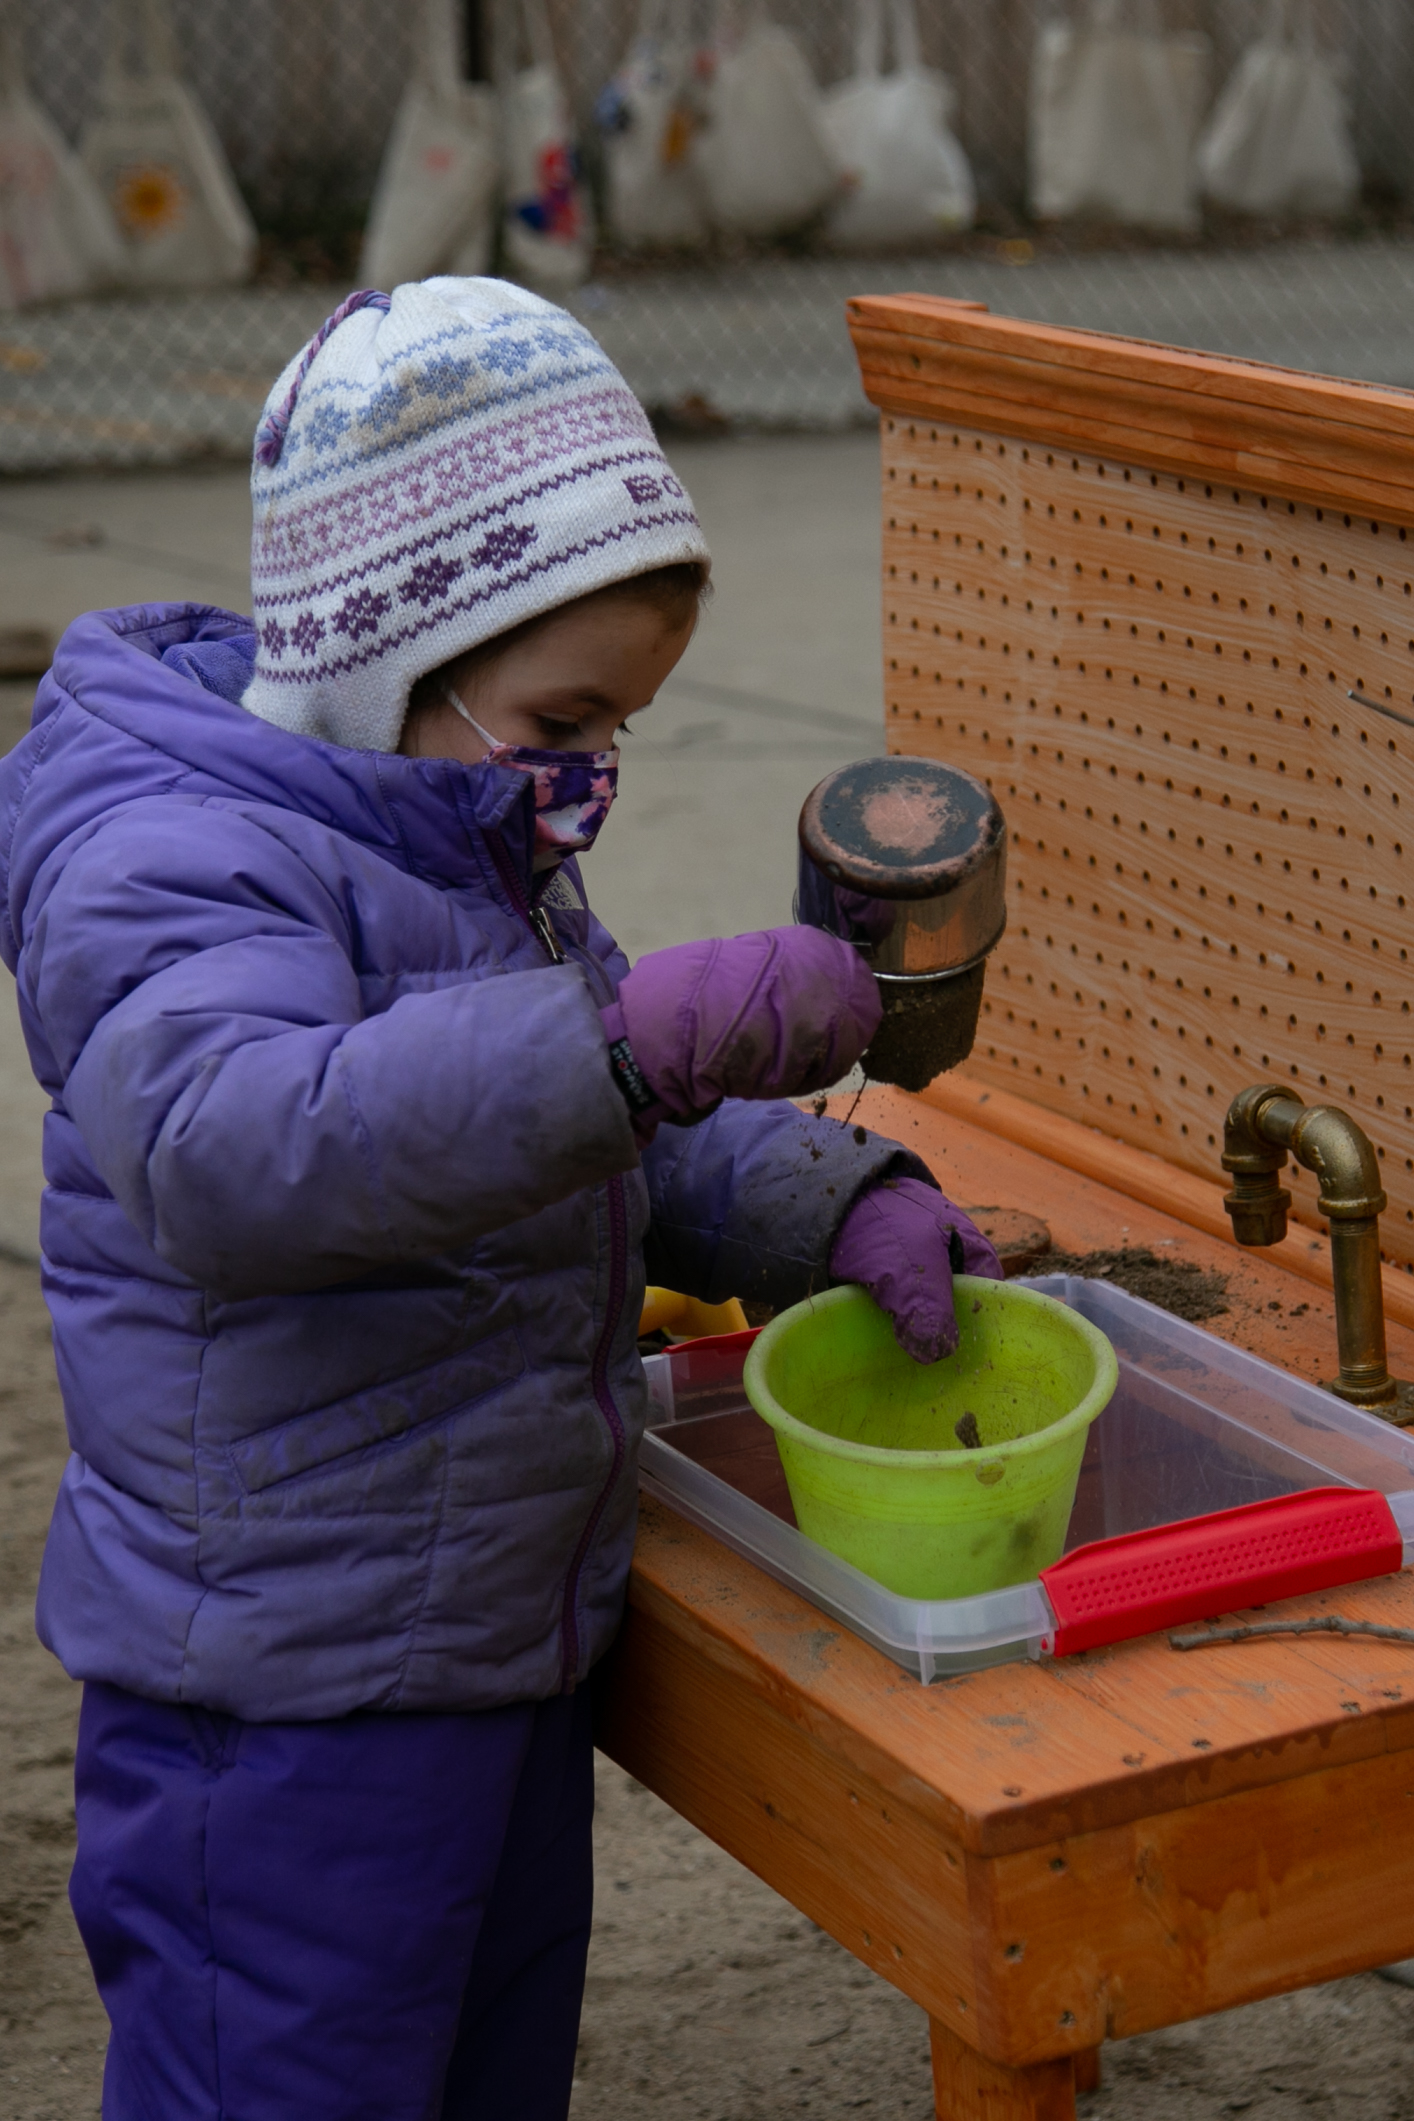 Outdoor play cooking